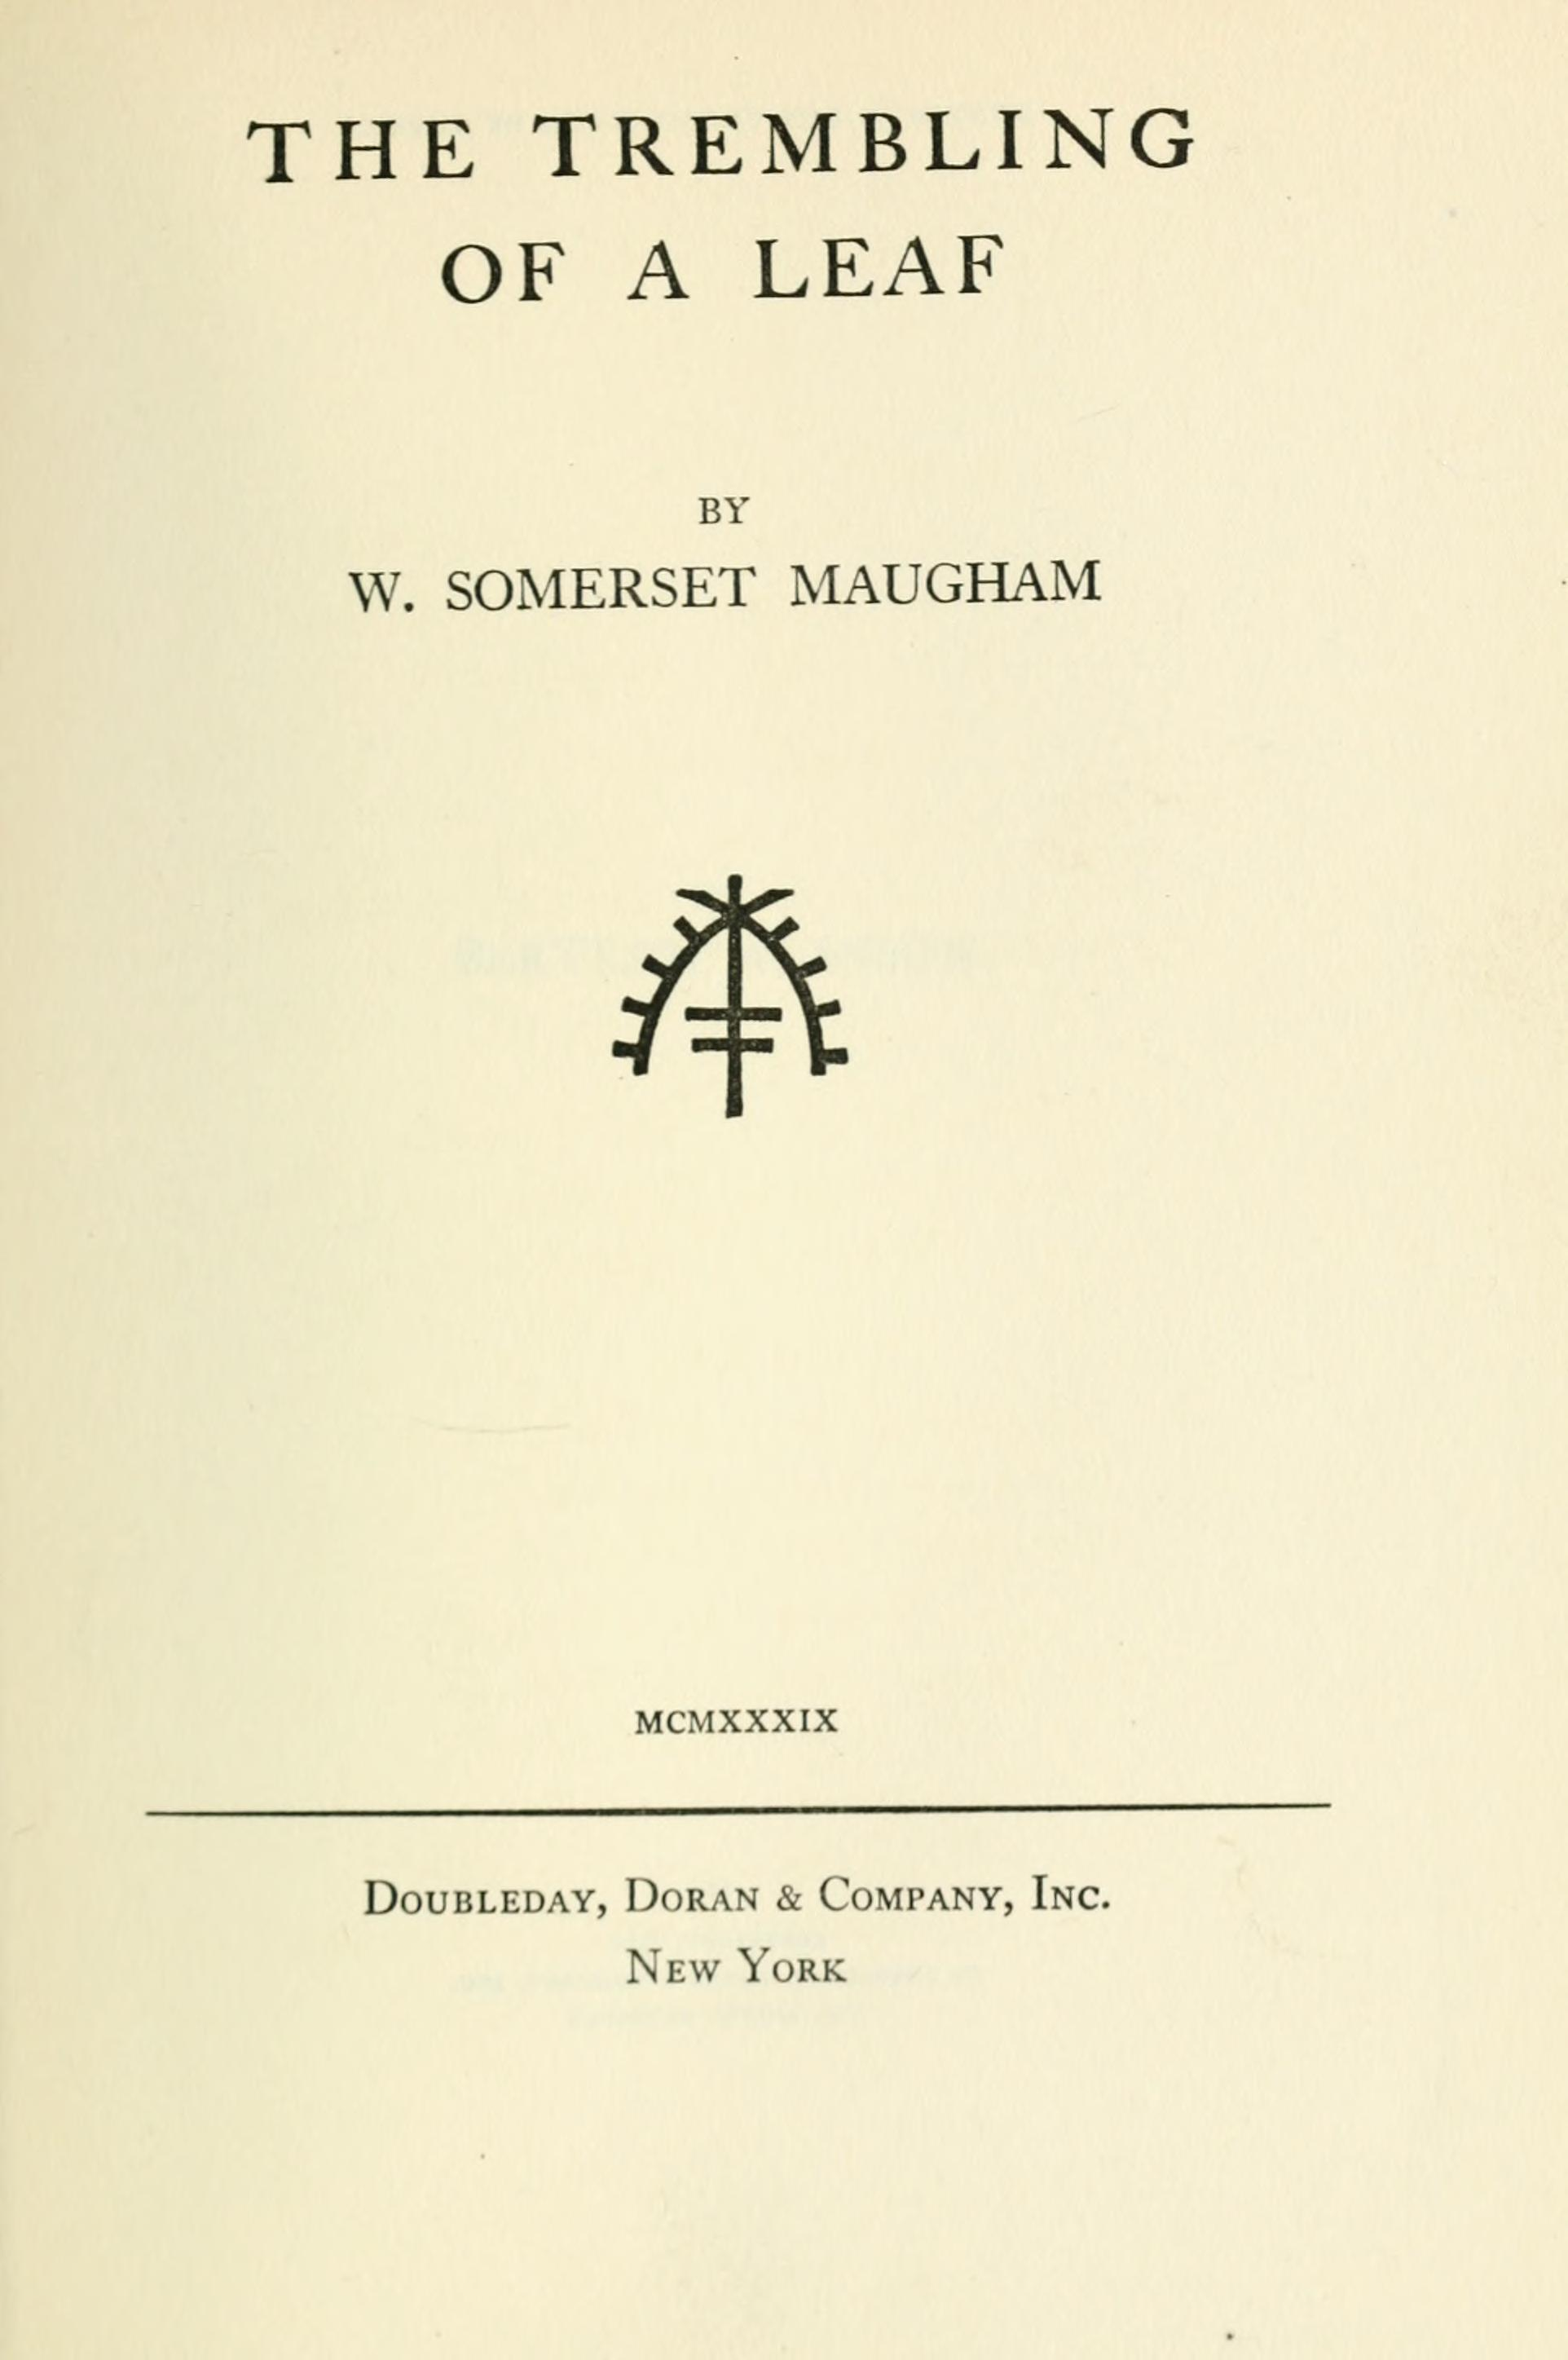 list of works by w somerset maugham frontispiece for the trembling of a leaf 1921